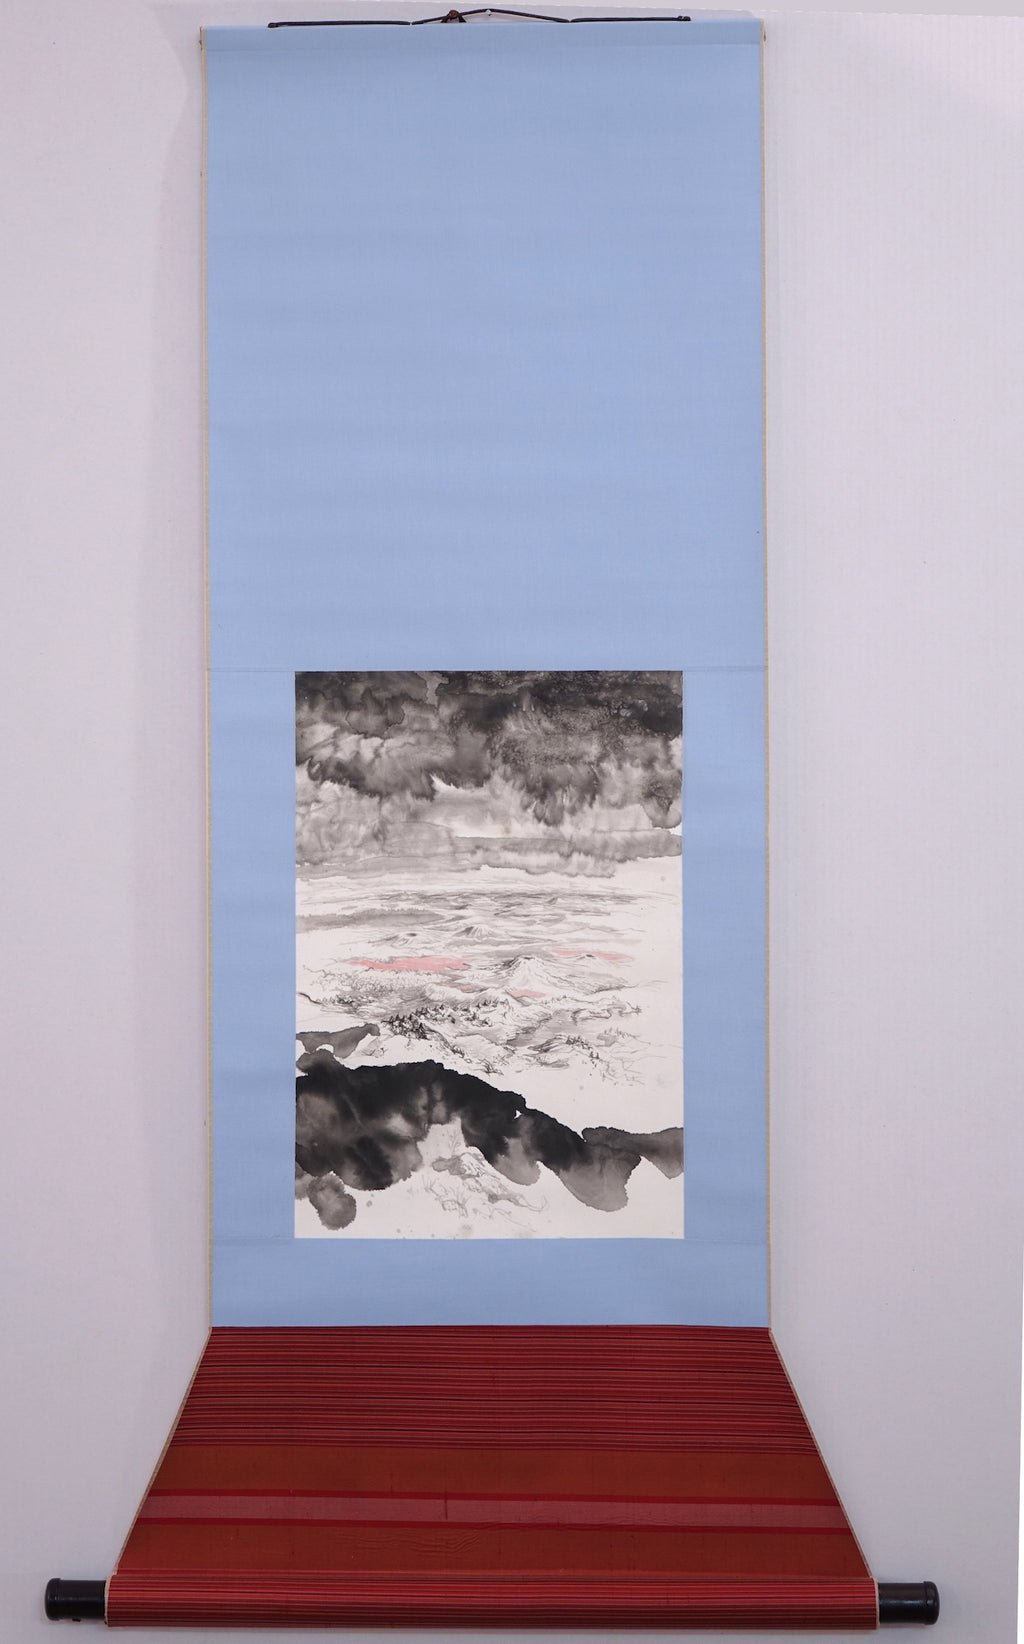 Henrik Schrat Works on paper The Pink Lakes of Tonder - Henrik Schrat Works on paper The Pink Lakes of Tonder - 5 Pieces Gallery - Contemporary Art & Photography